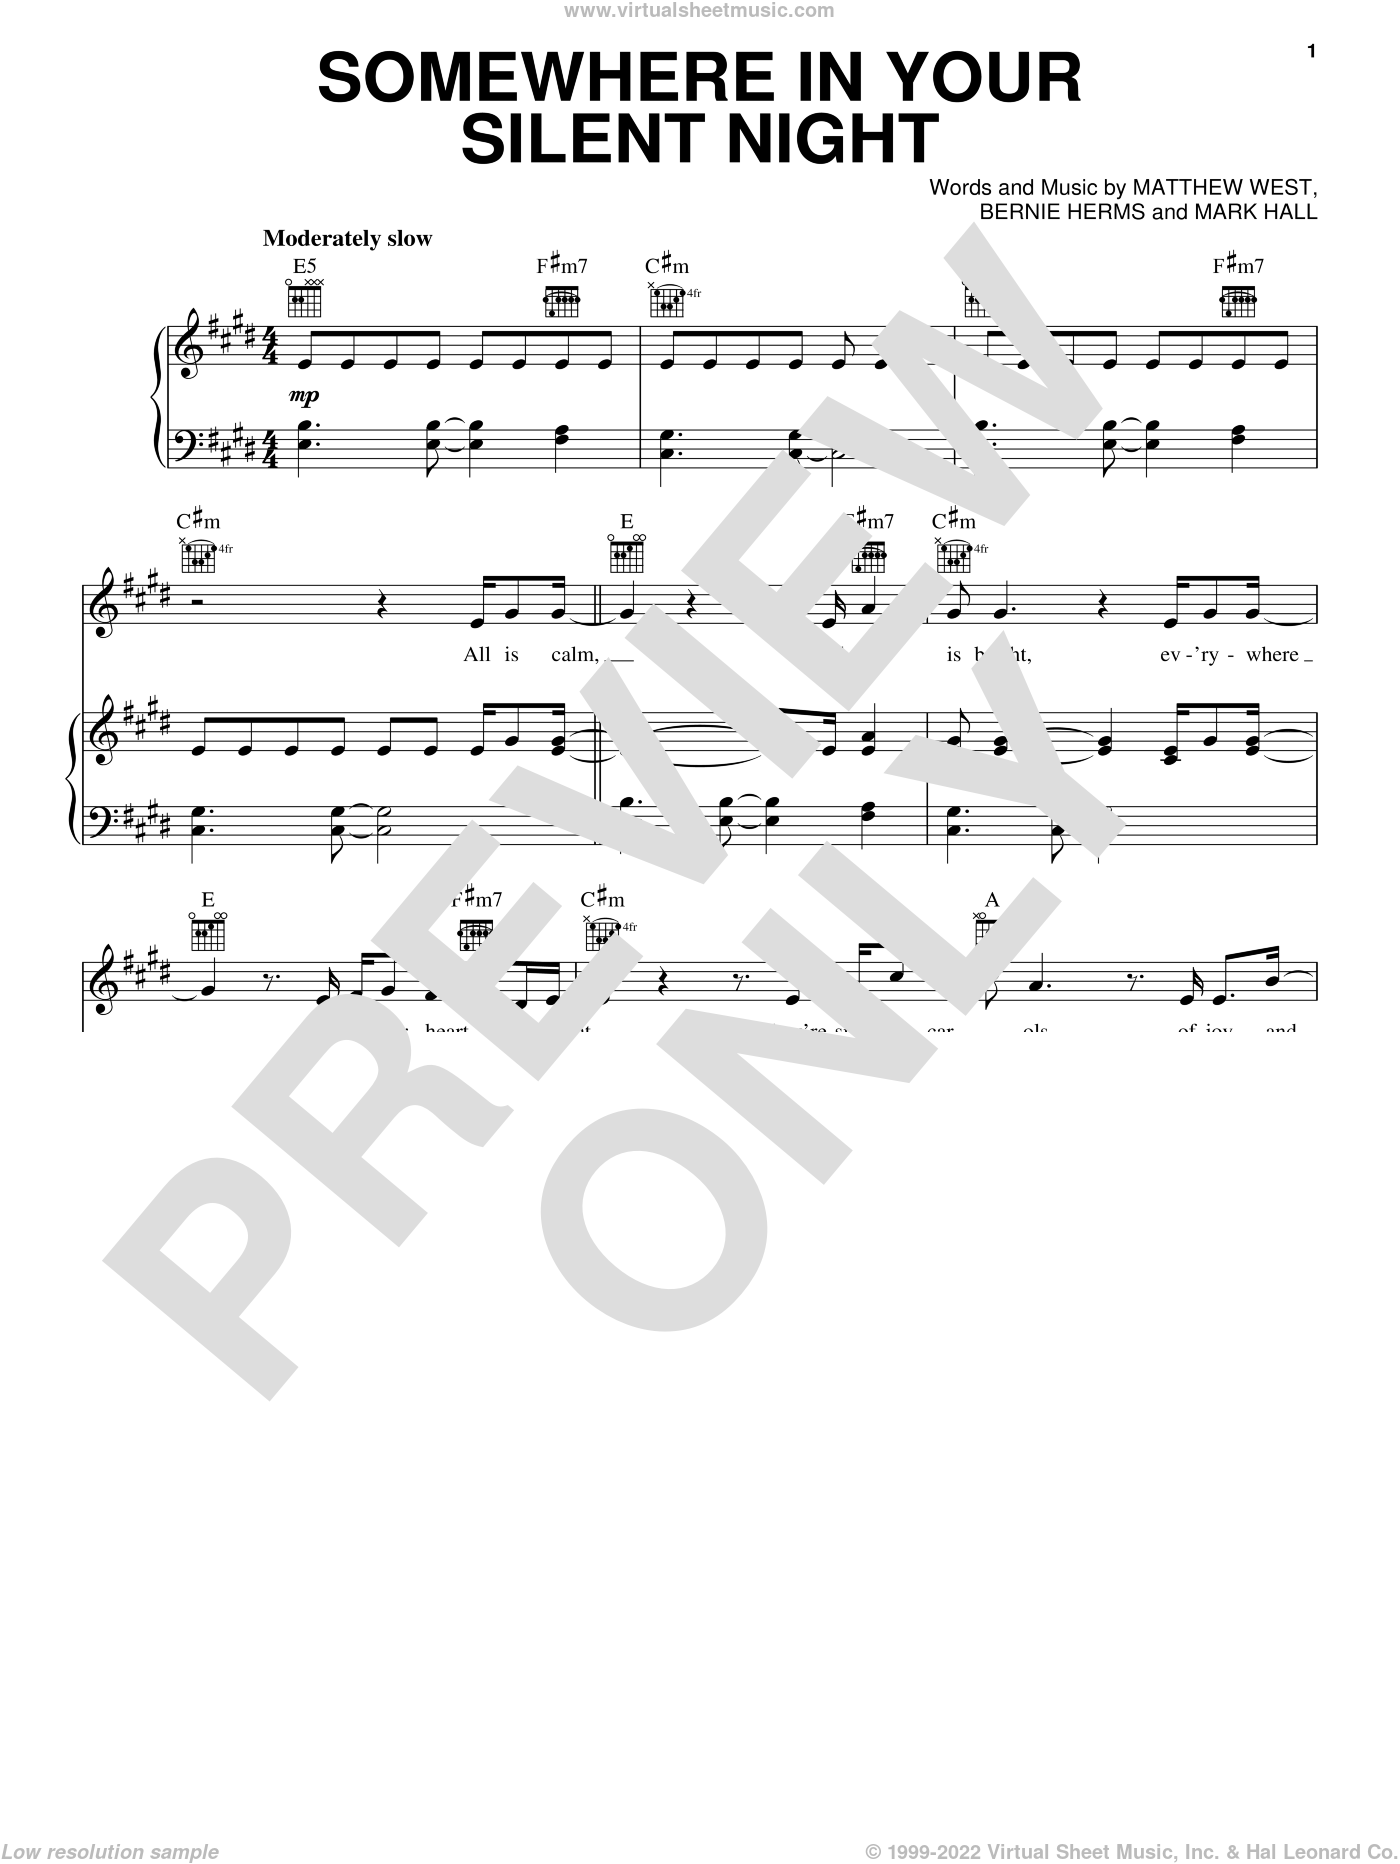 Somewhere In Your Silent Night sheet music for voice, piano or guitar by Casting Crowns, Bernie Herms, Mark Hall and Matthew West, intermediate skill level